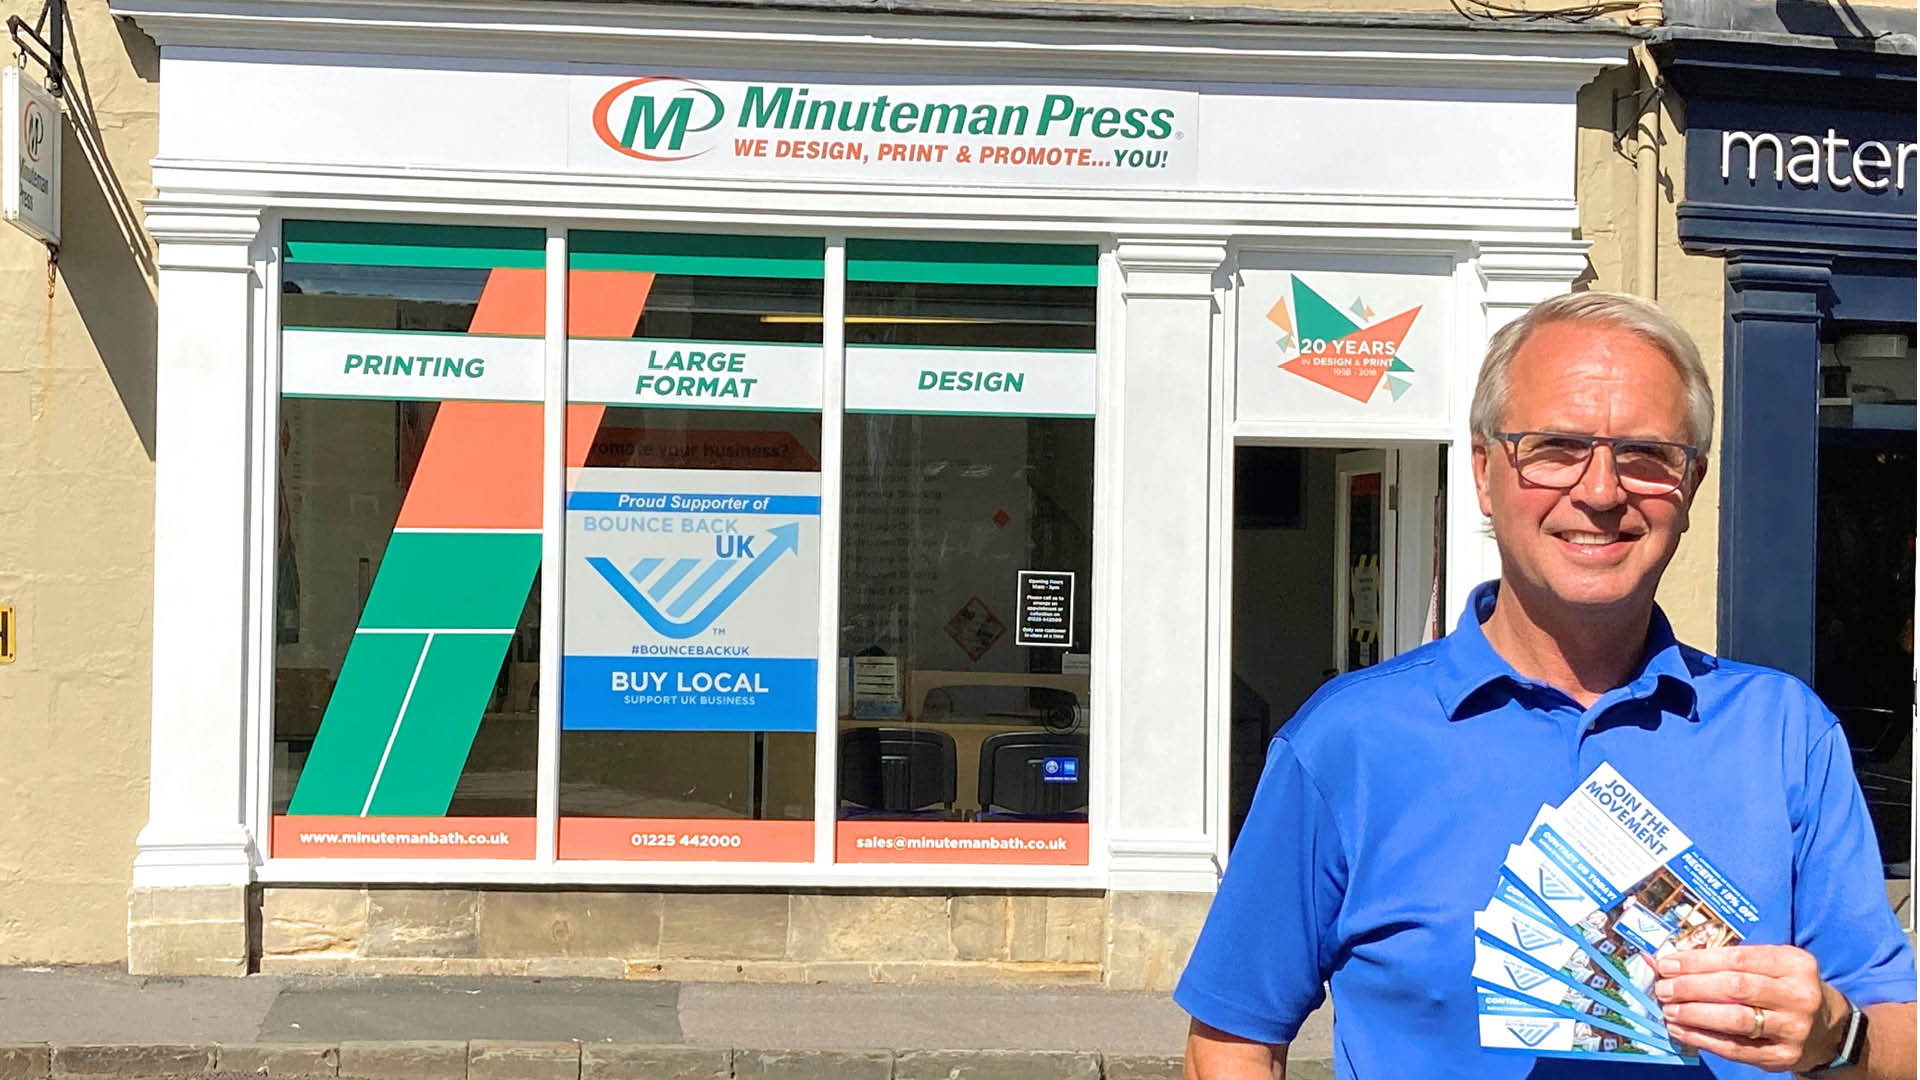 Minuteman Press Franchise Helps Local UK Businesses Bounce Back from COVID-19